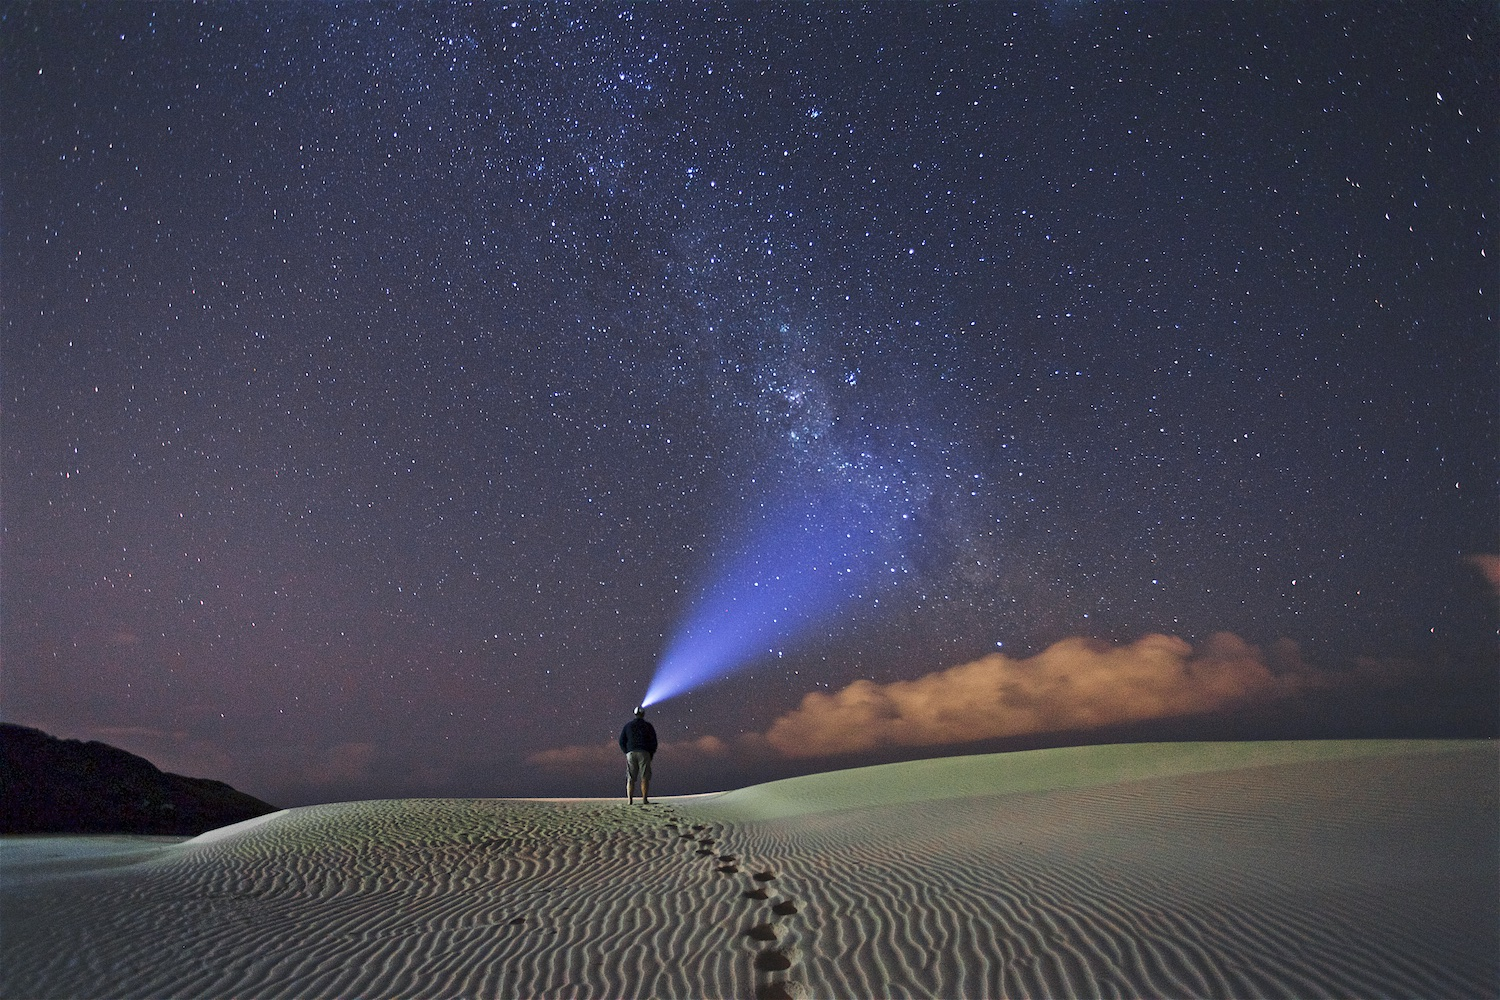 Milky Way, South Africa